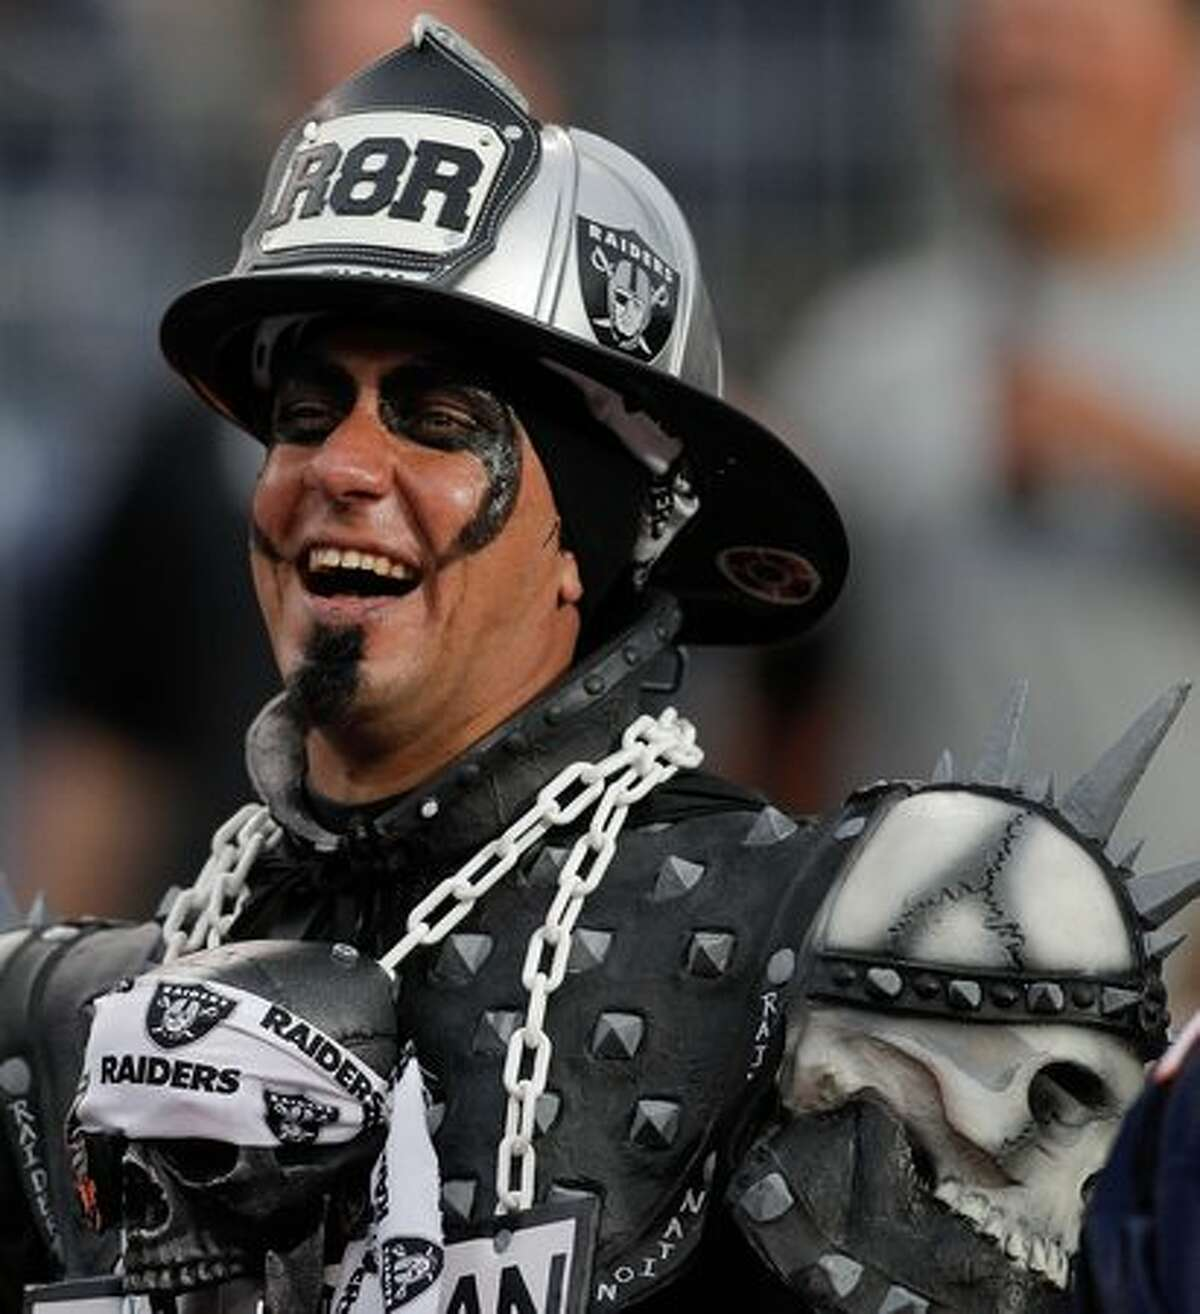 An Oakland Raiders fan is all smiles during the Raiders 59-14 victory over the Denver Broncos at INVESCO Field at Mile High on October 24, 2010 in Denver, Colorado.